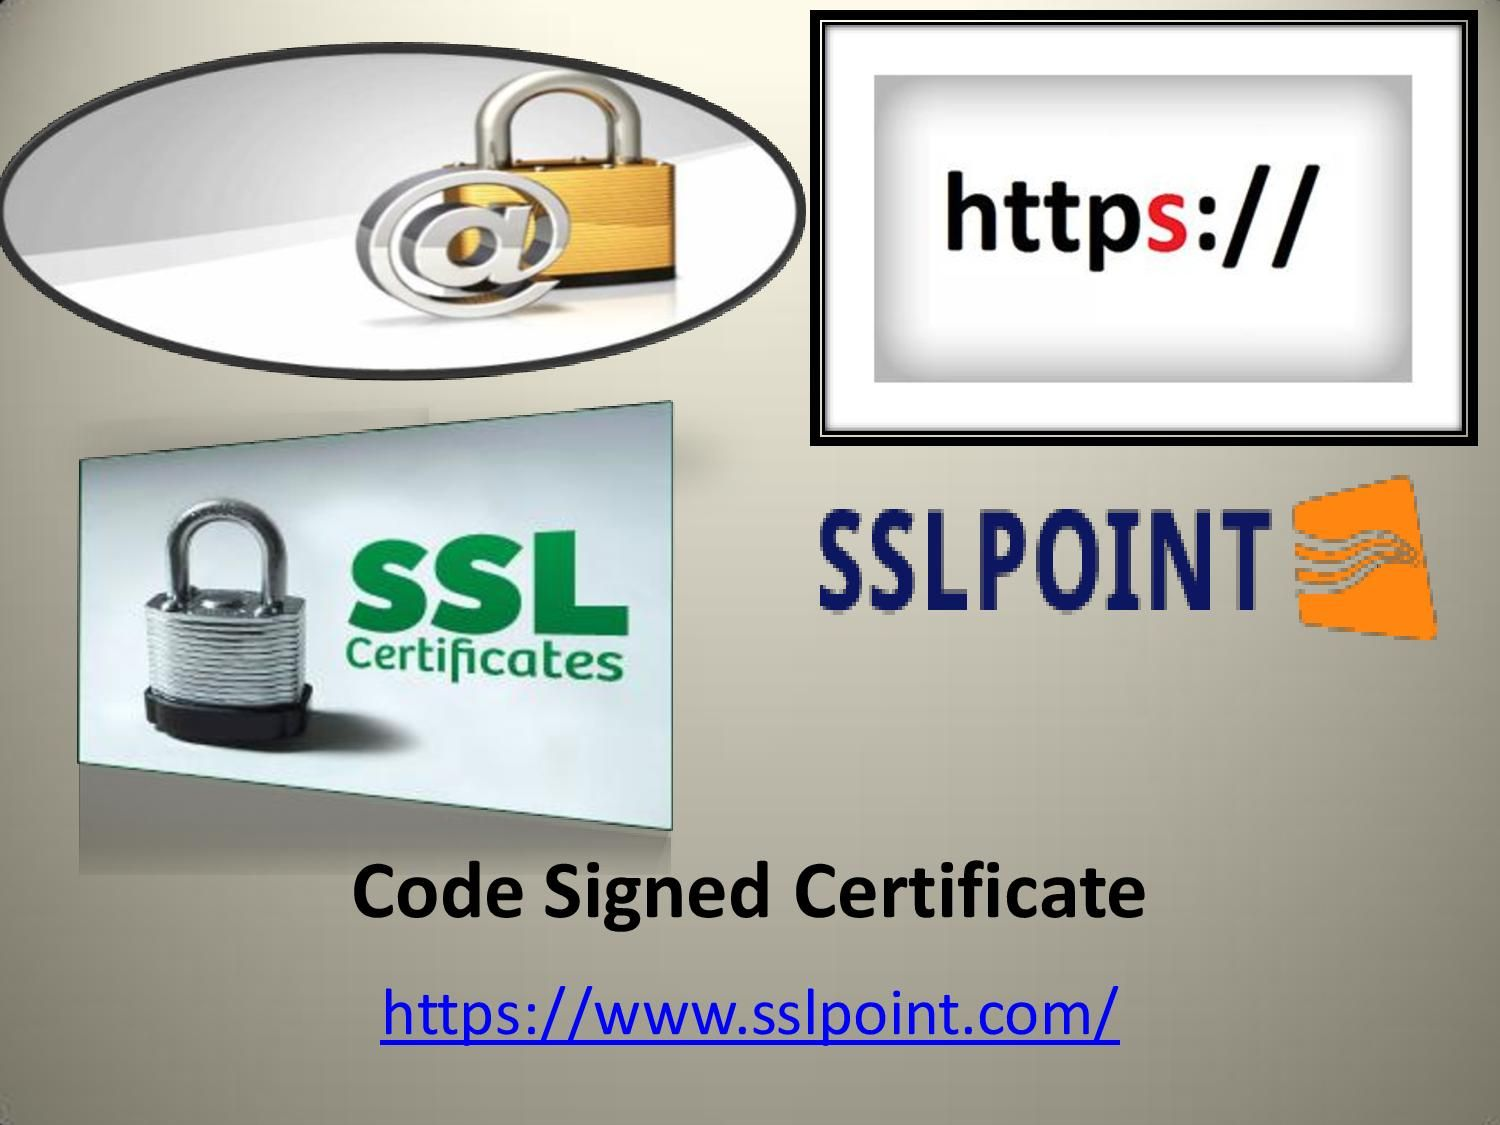 Best information about code signed certificate httpswww sslpoint offers a wide selection of cheap ssl certificates from industry leading certificate authorities with ultra fast issuance 1betcityfo Images